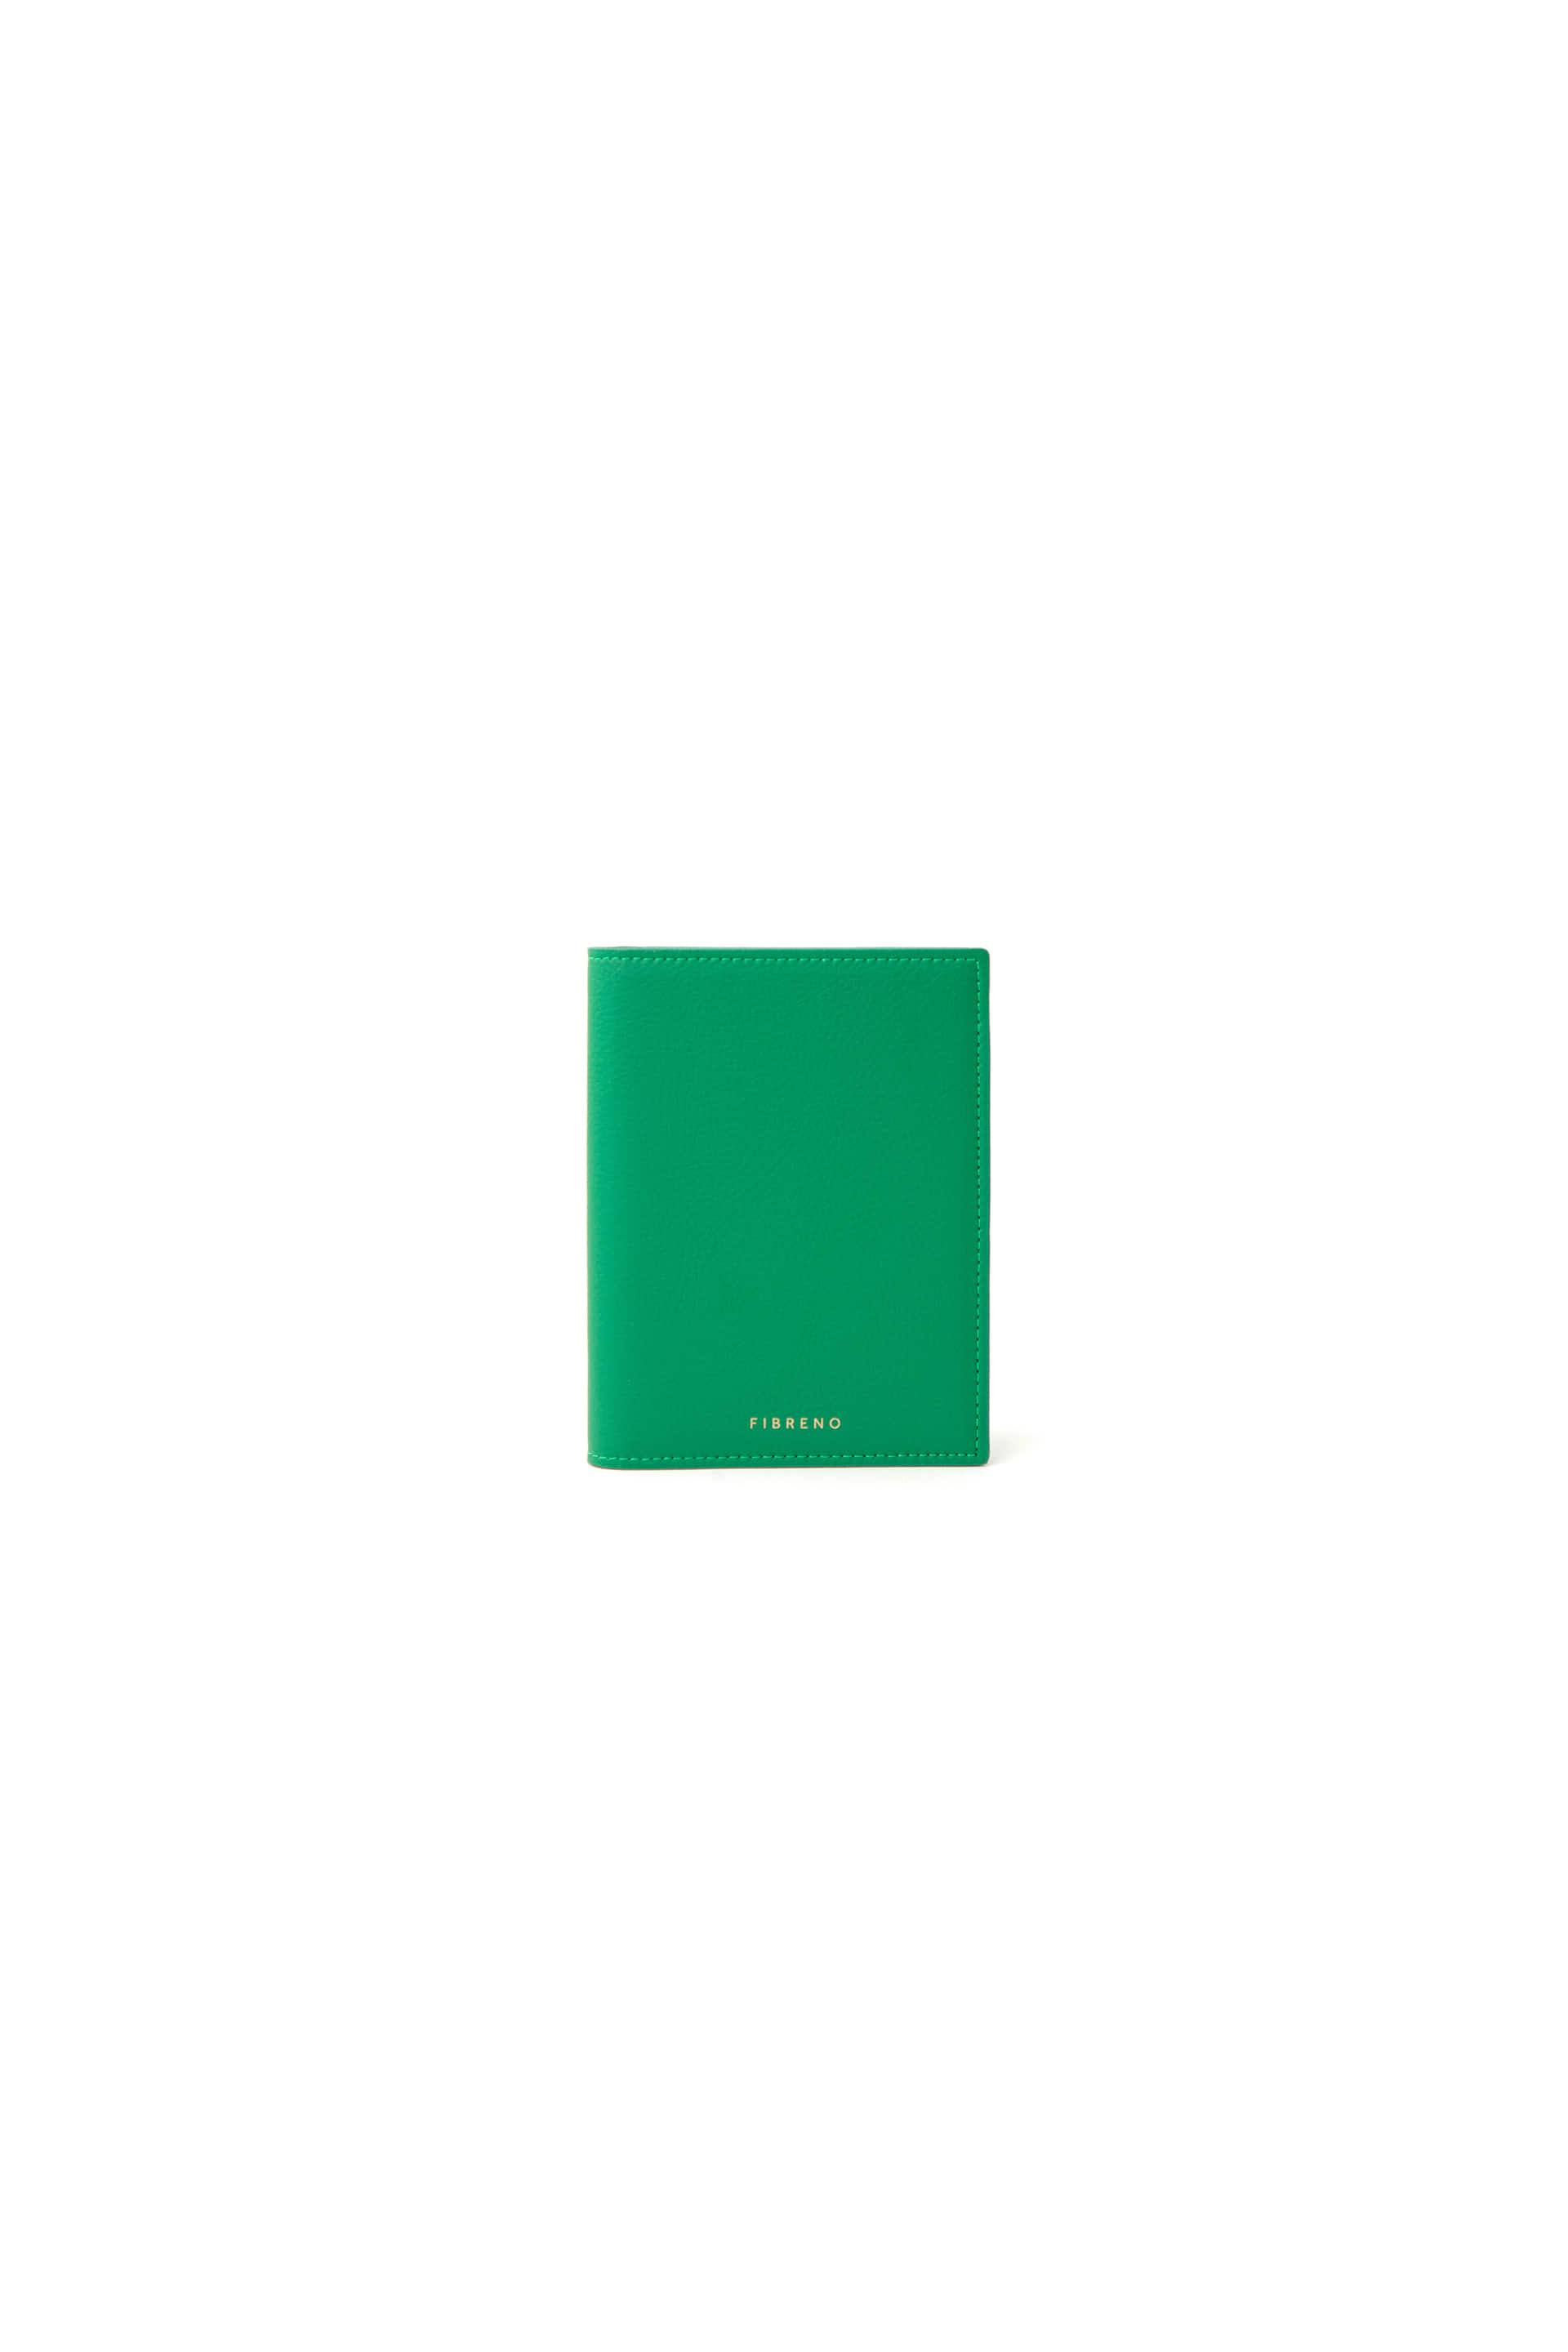 PASSPORT CASE 11 Tamani Green